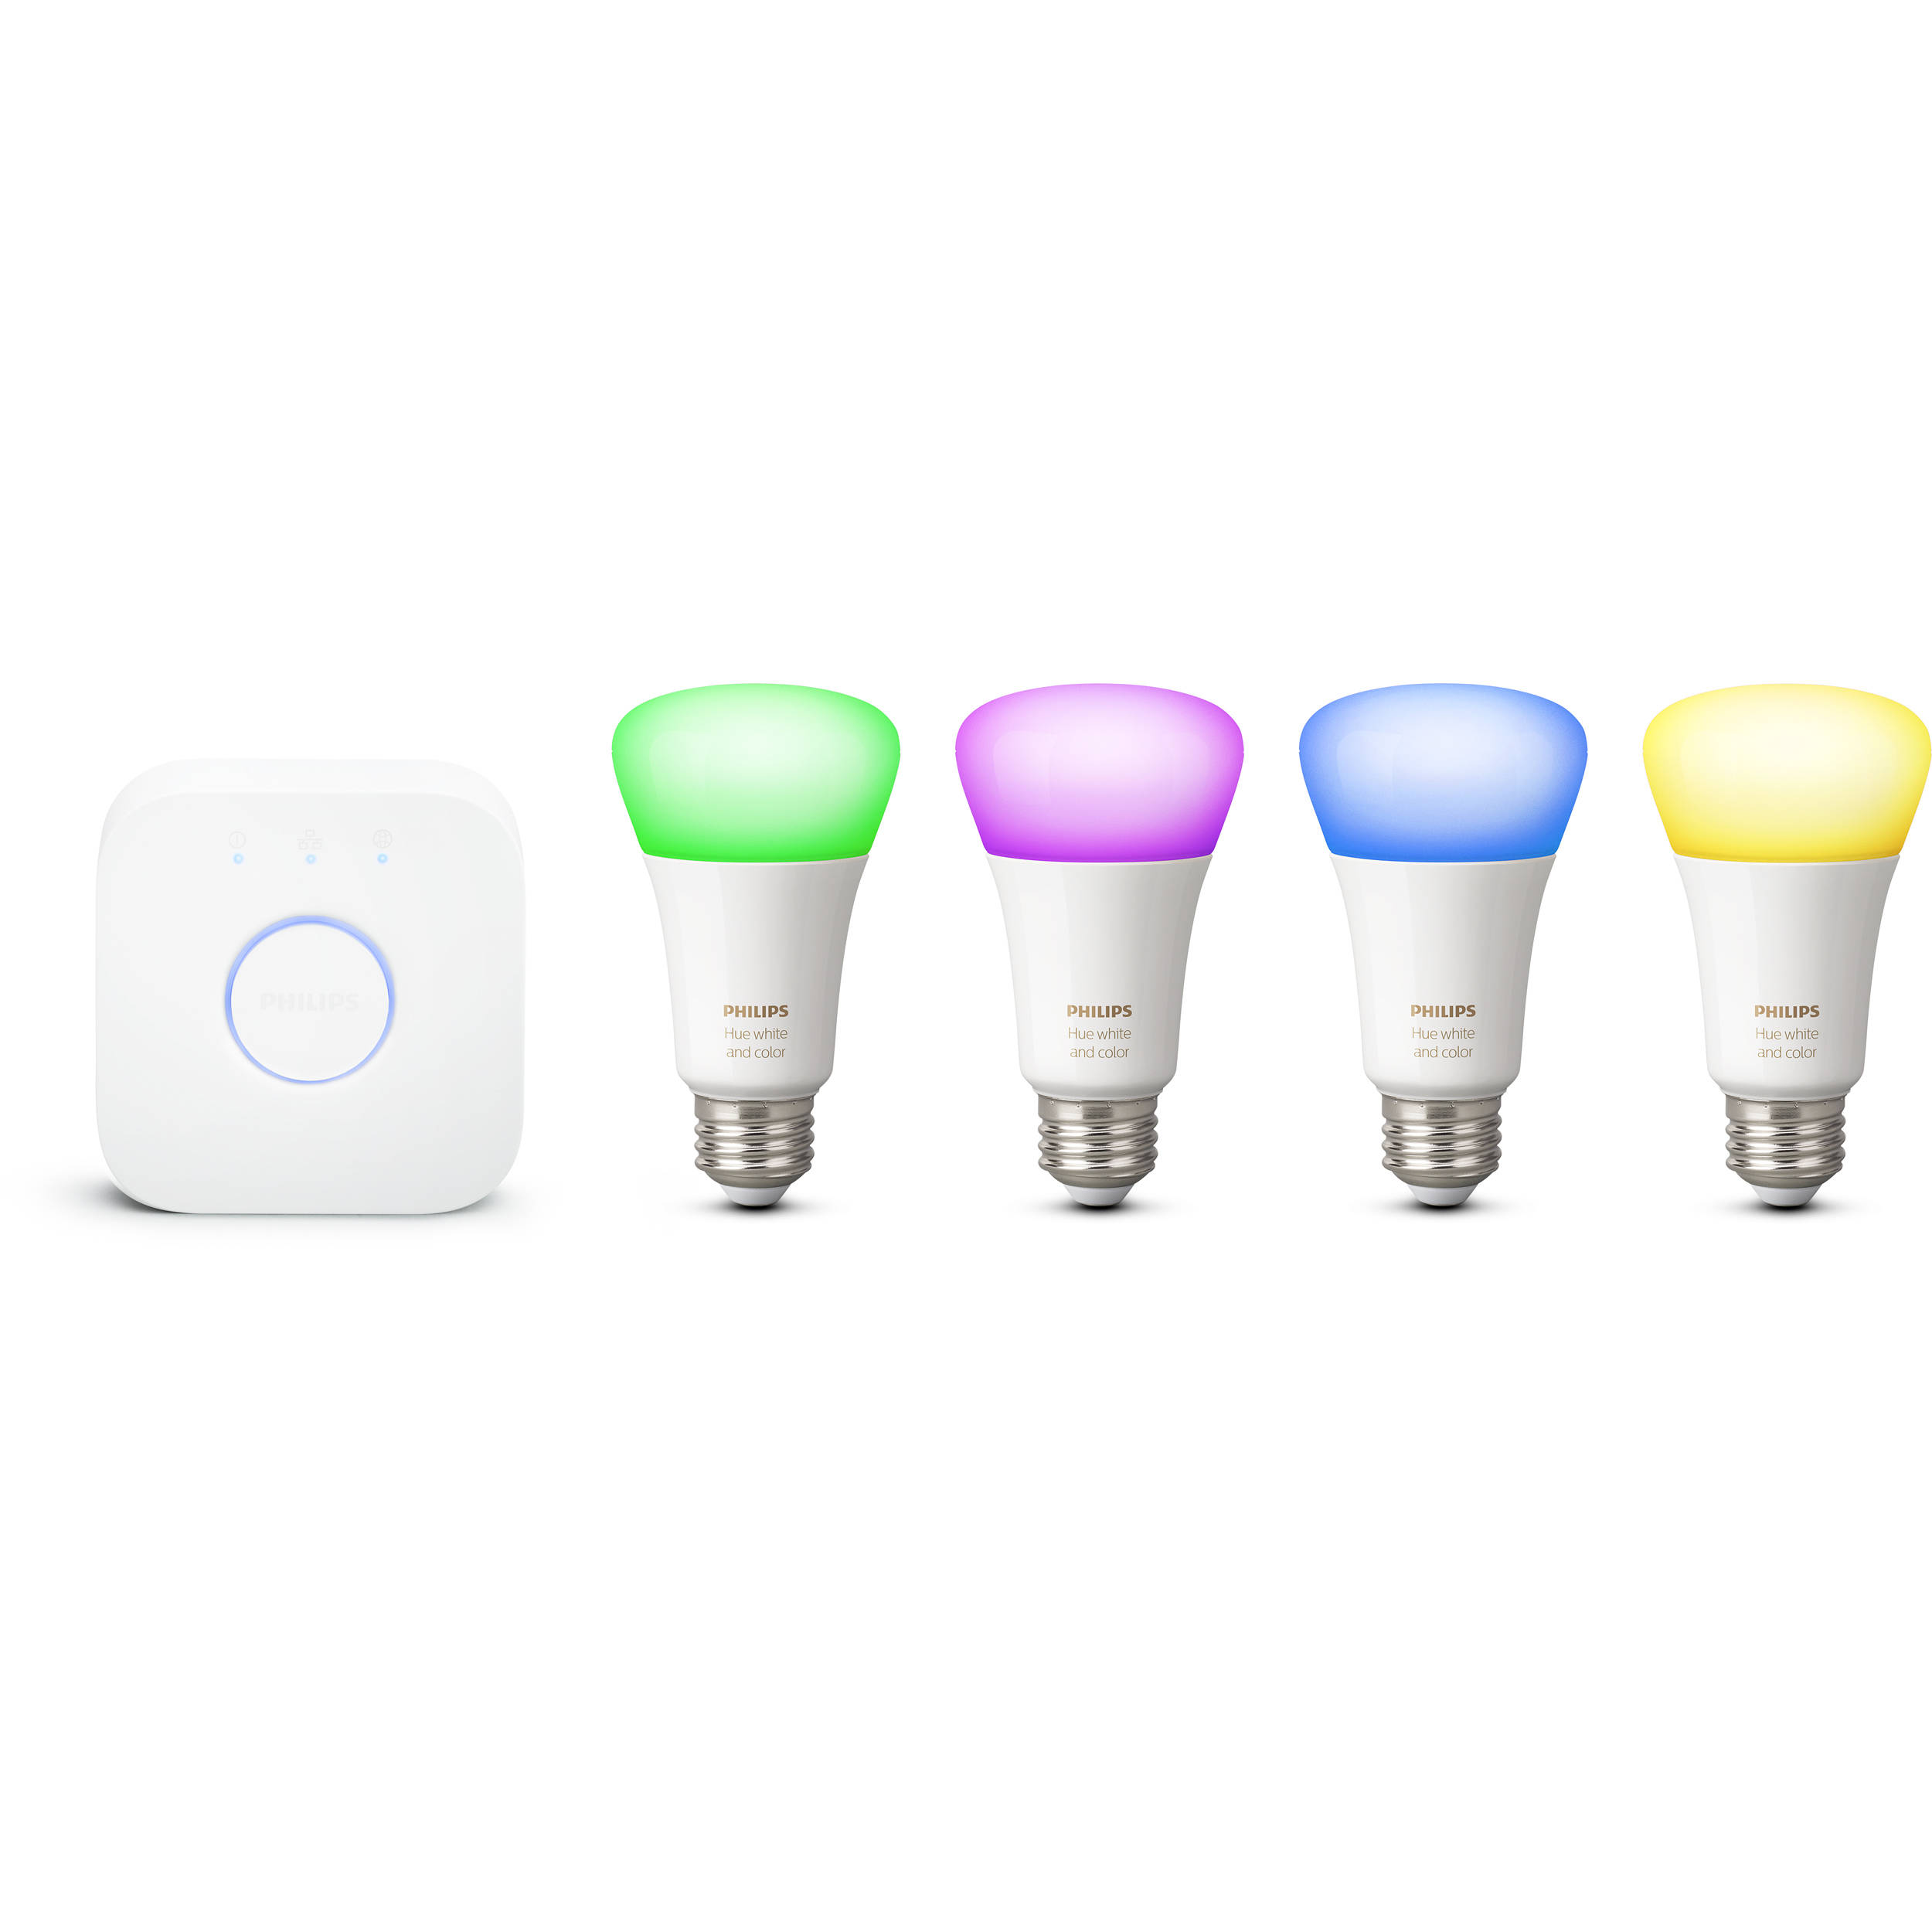 Philips Hue A19 Starter Kit White Color Ambiance 4 Pack